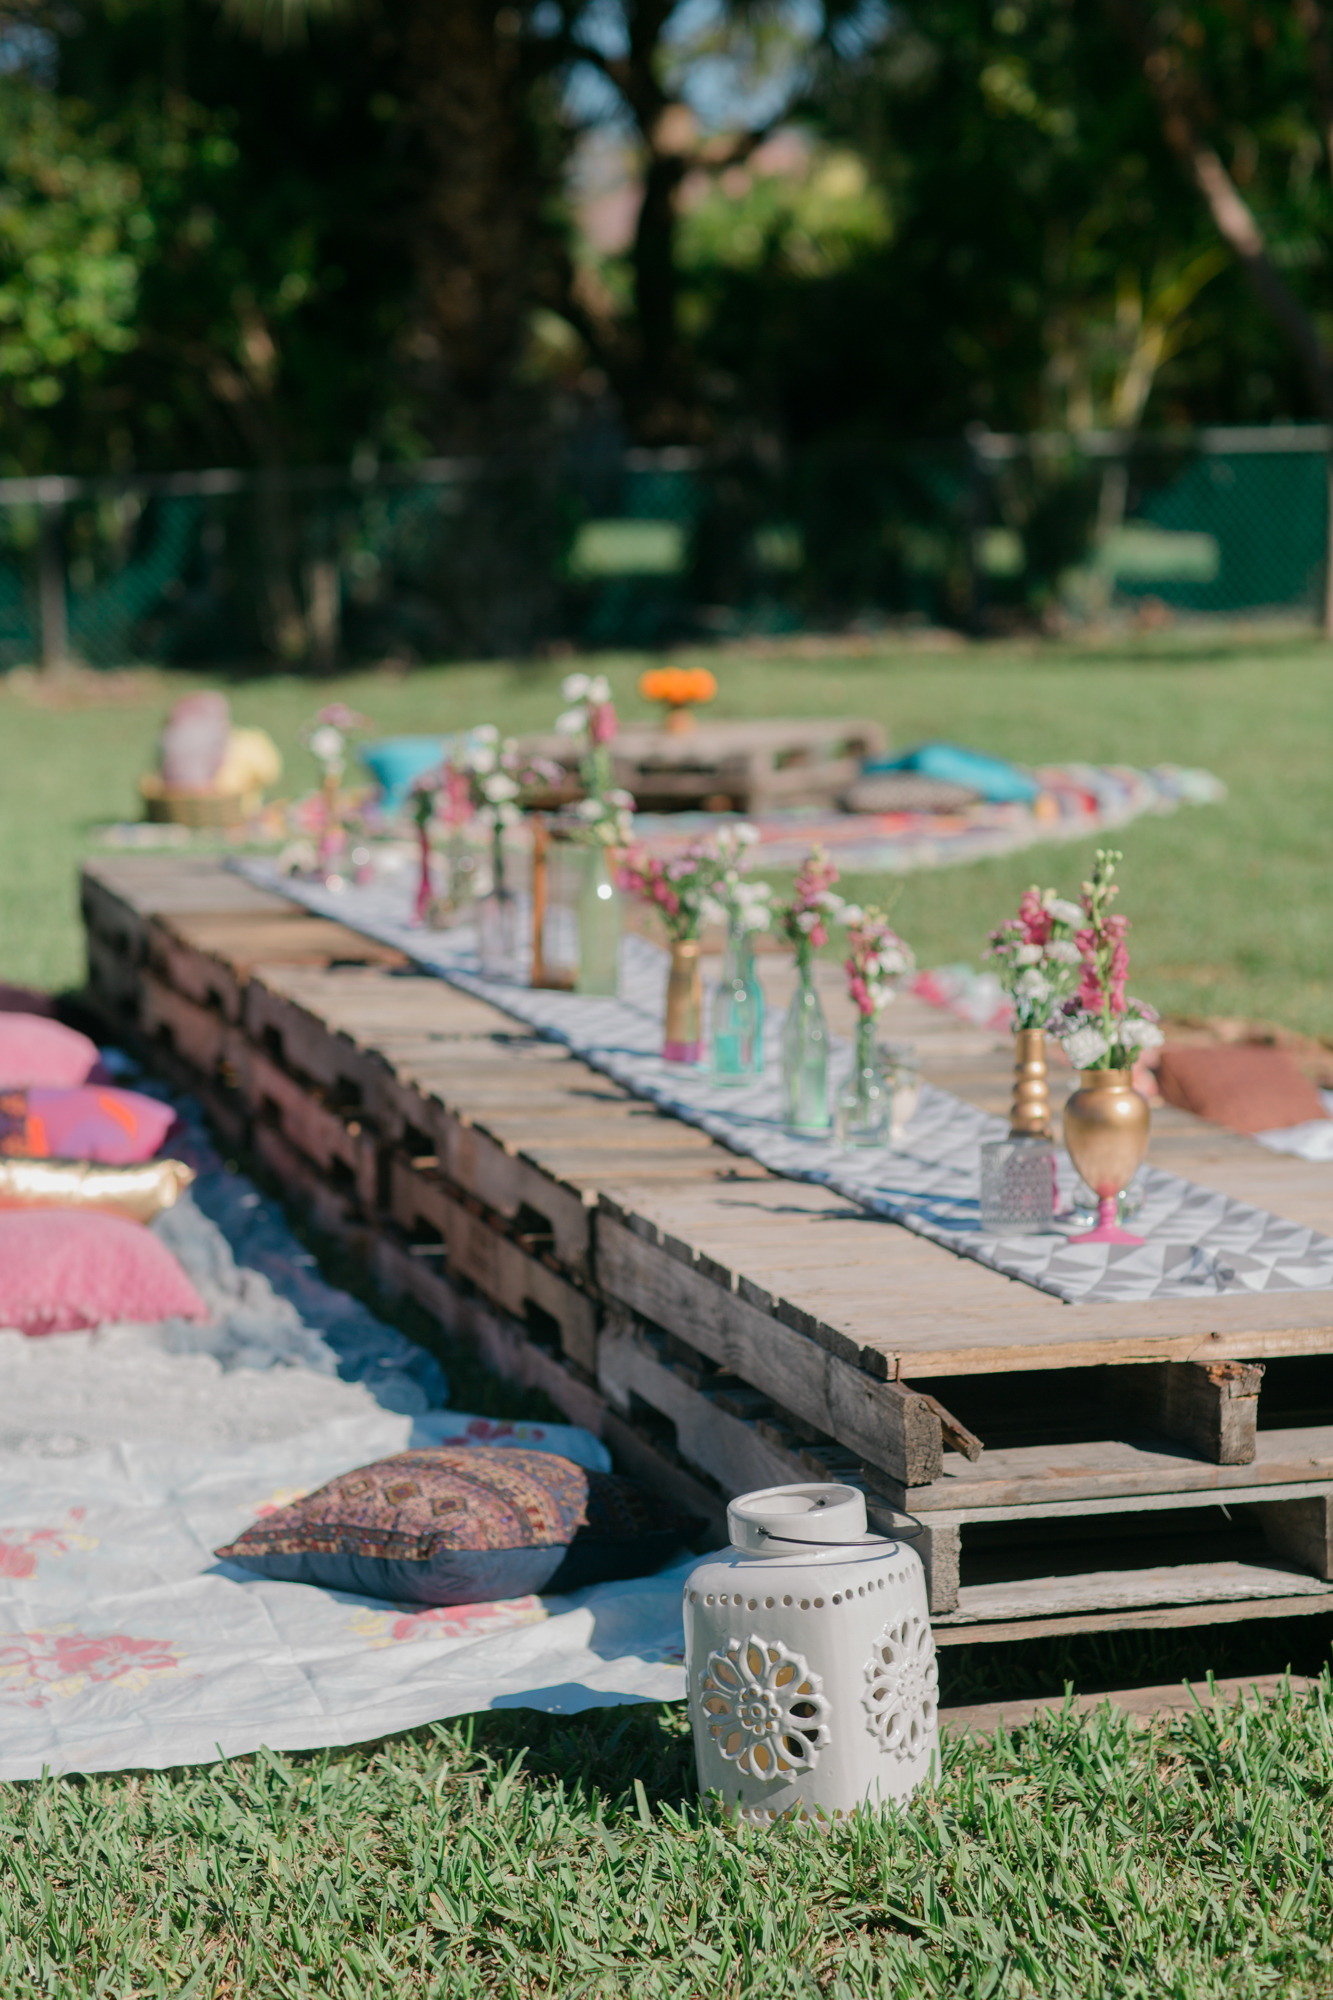 50 Outdoor Party Ideas You Should Try Out This Summer - Garden-parties-ideas